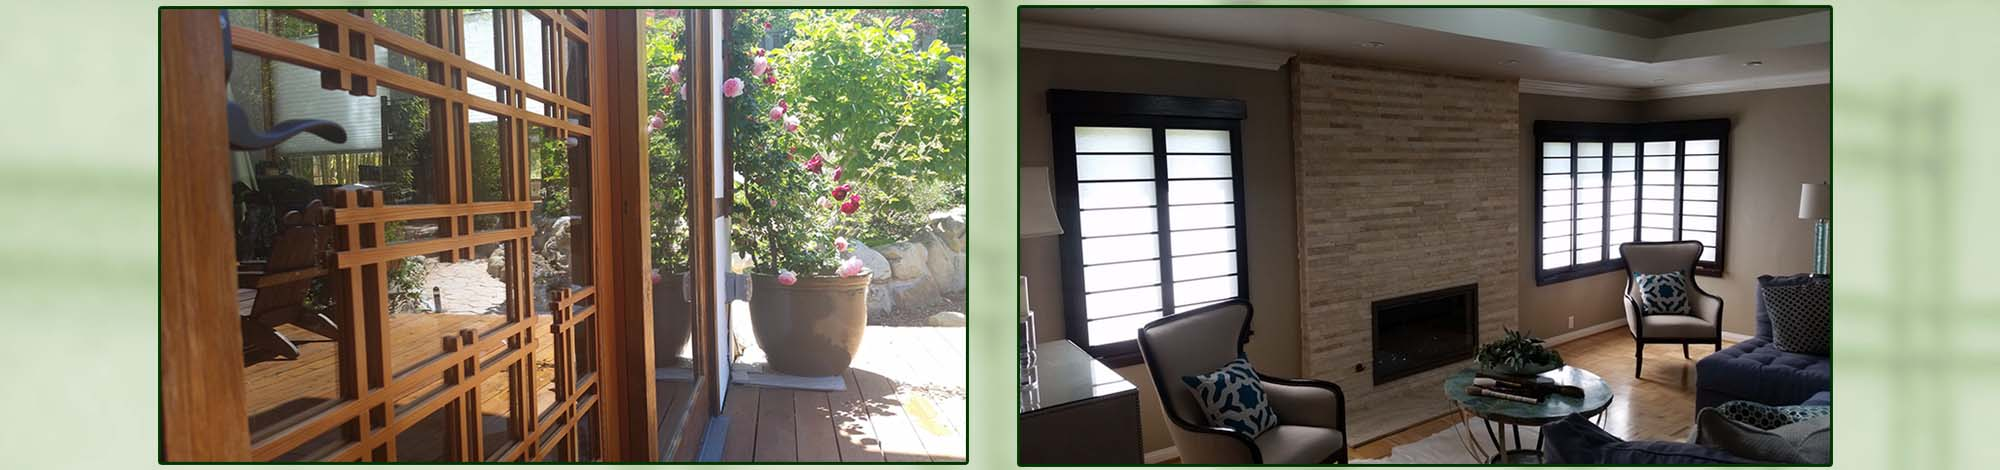 Whether you're looking for shoji doors or shoji window treatments in Los Angeles, CA, contact us